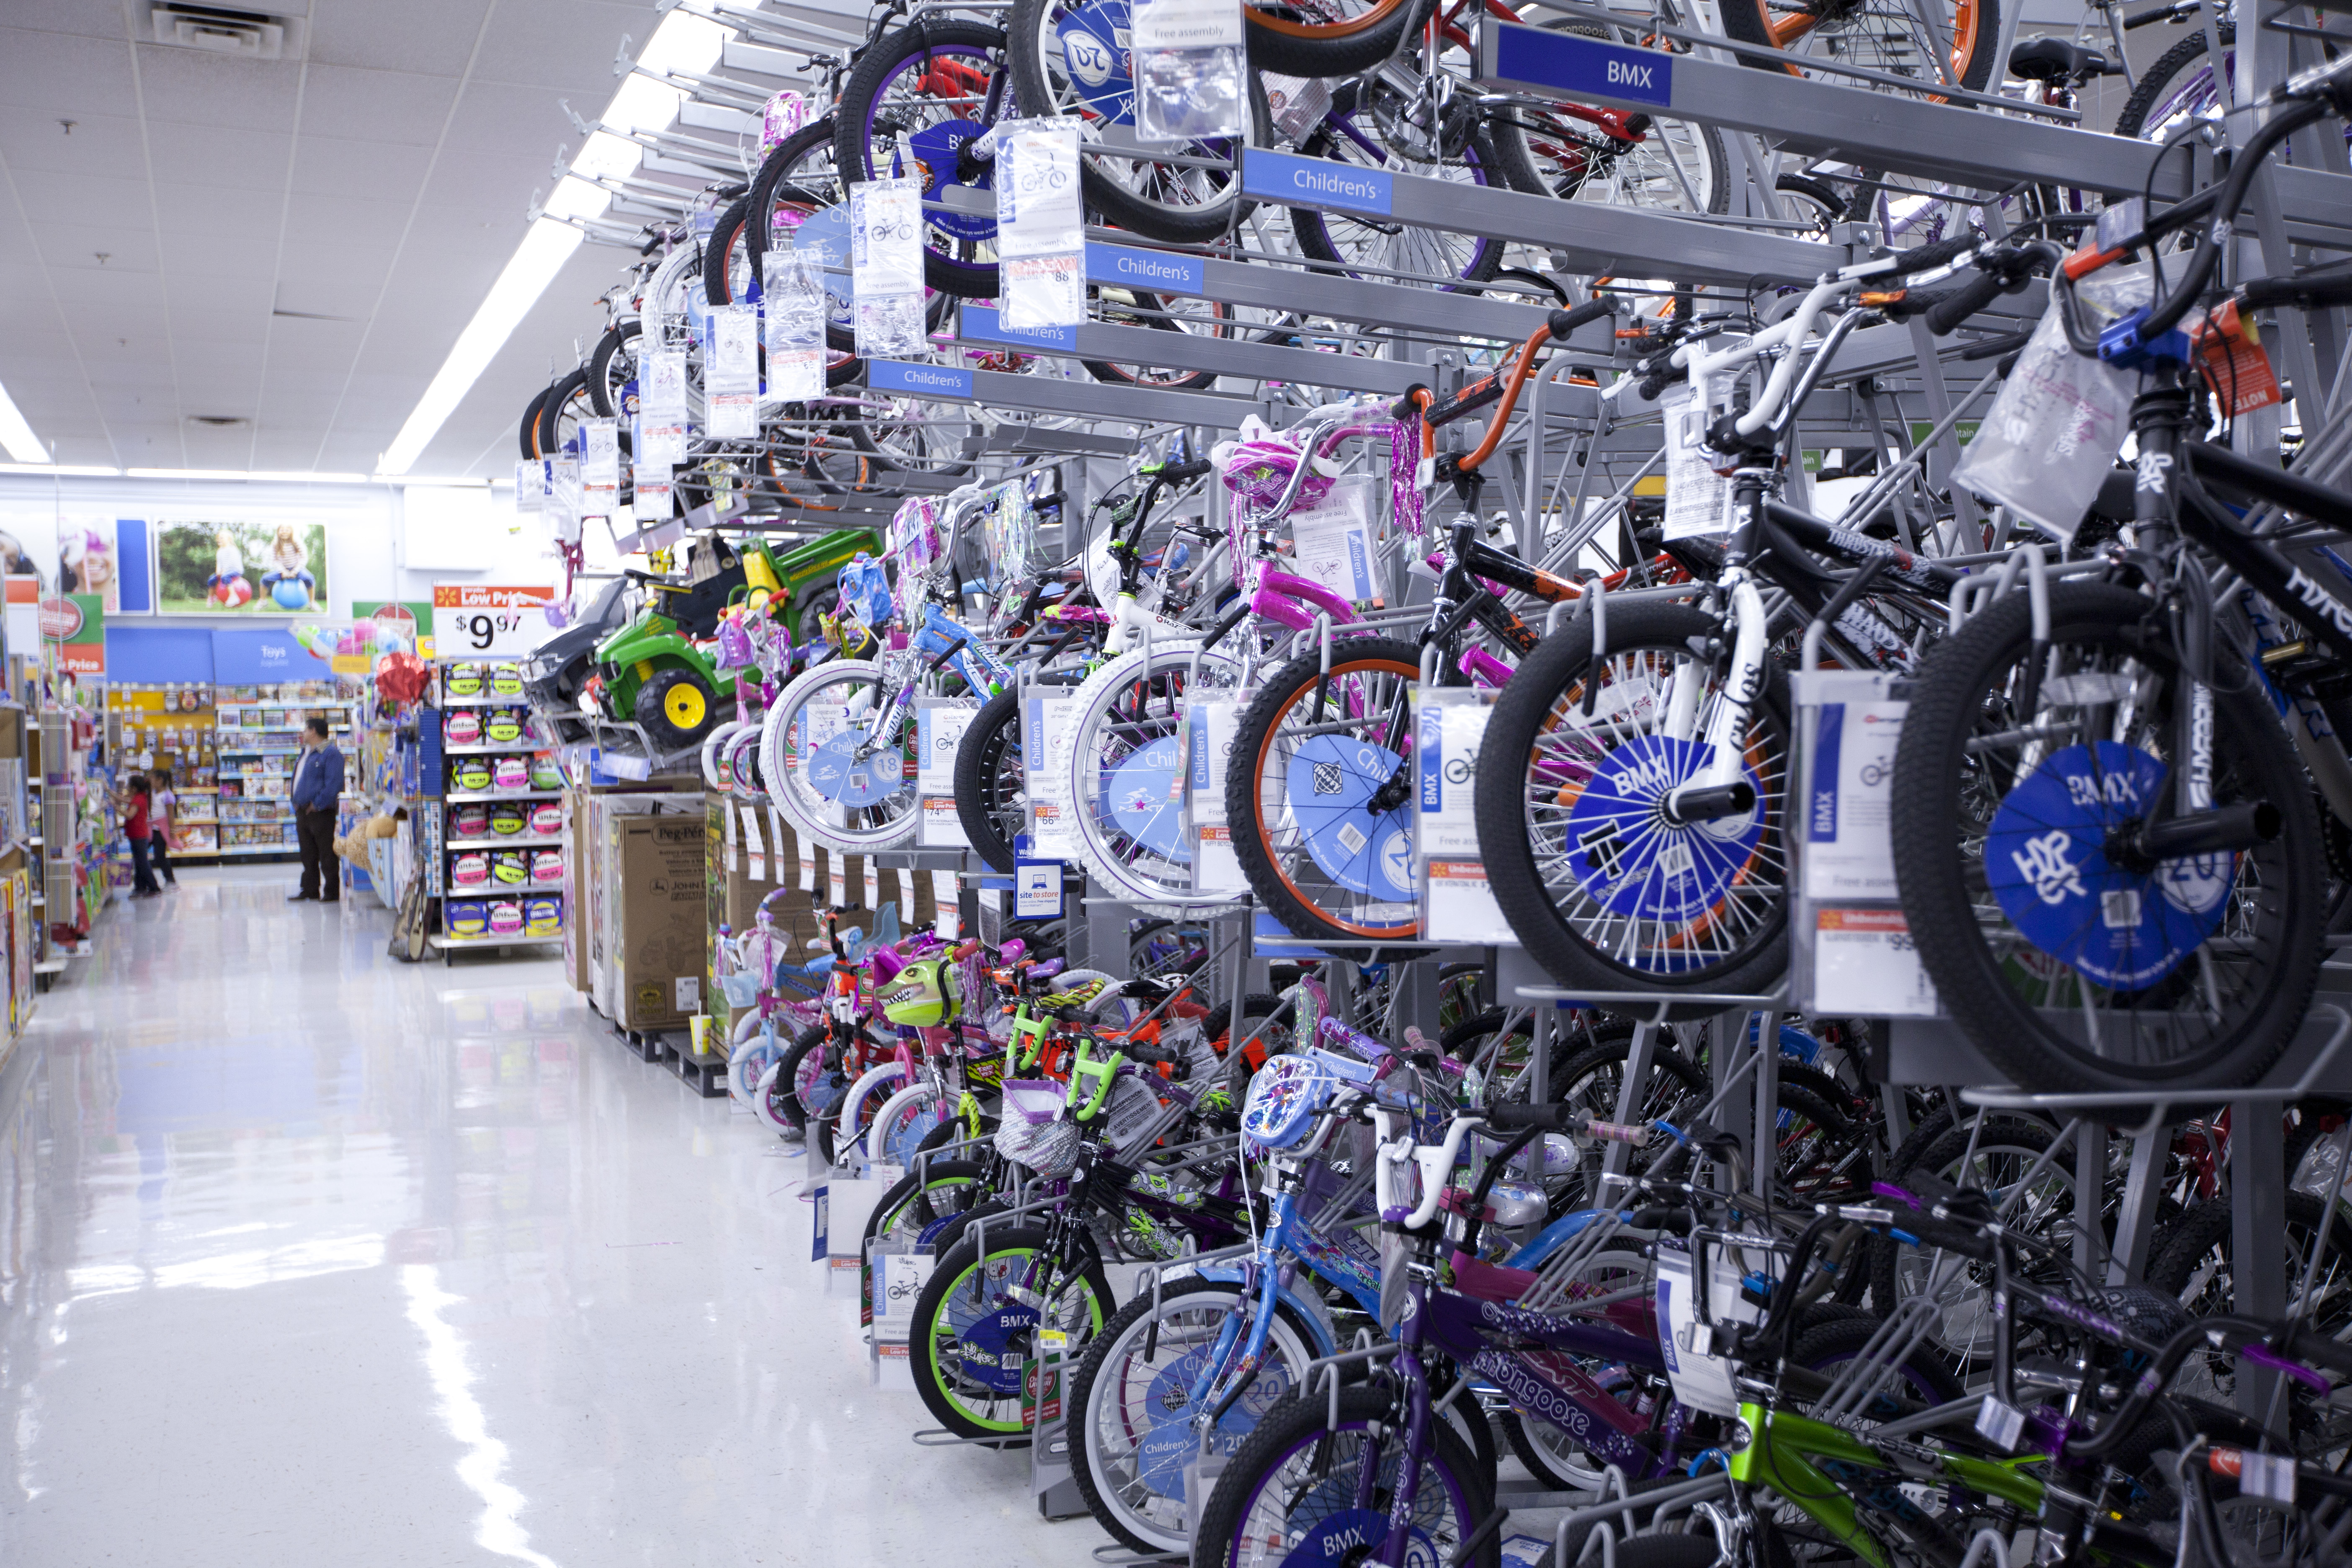 Browse bikes of all types, like cruiser bikes, mountain bikes, fixies (or fixed gear bikes), and more. If you like to think outside the bike, you can also shop brand name inline skates, skateboards, and scooters for kids of all ages.